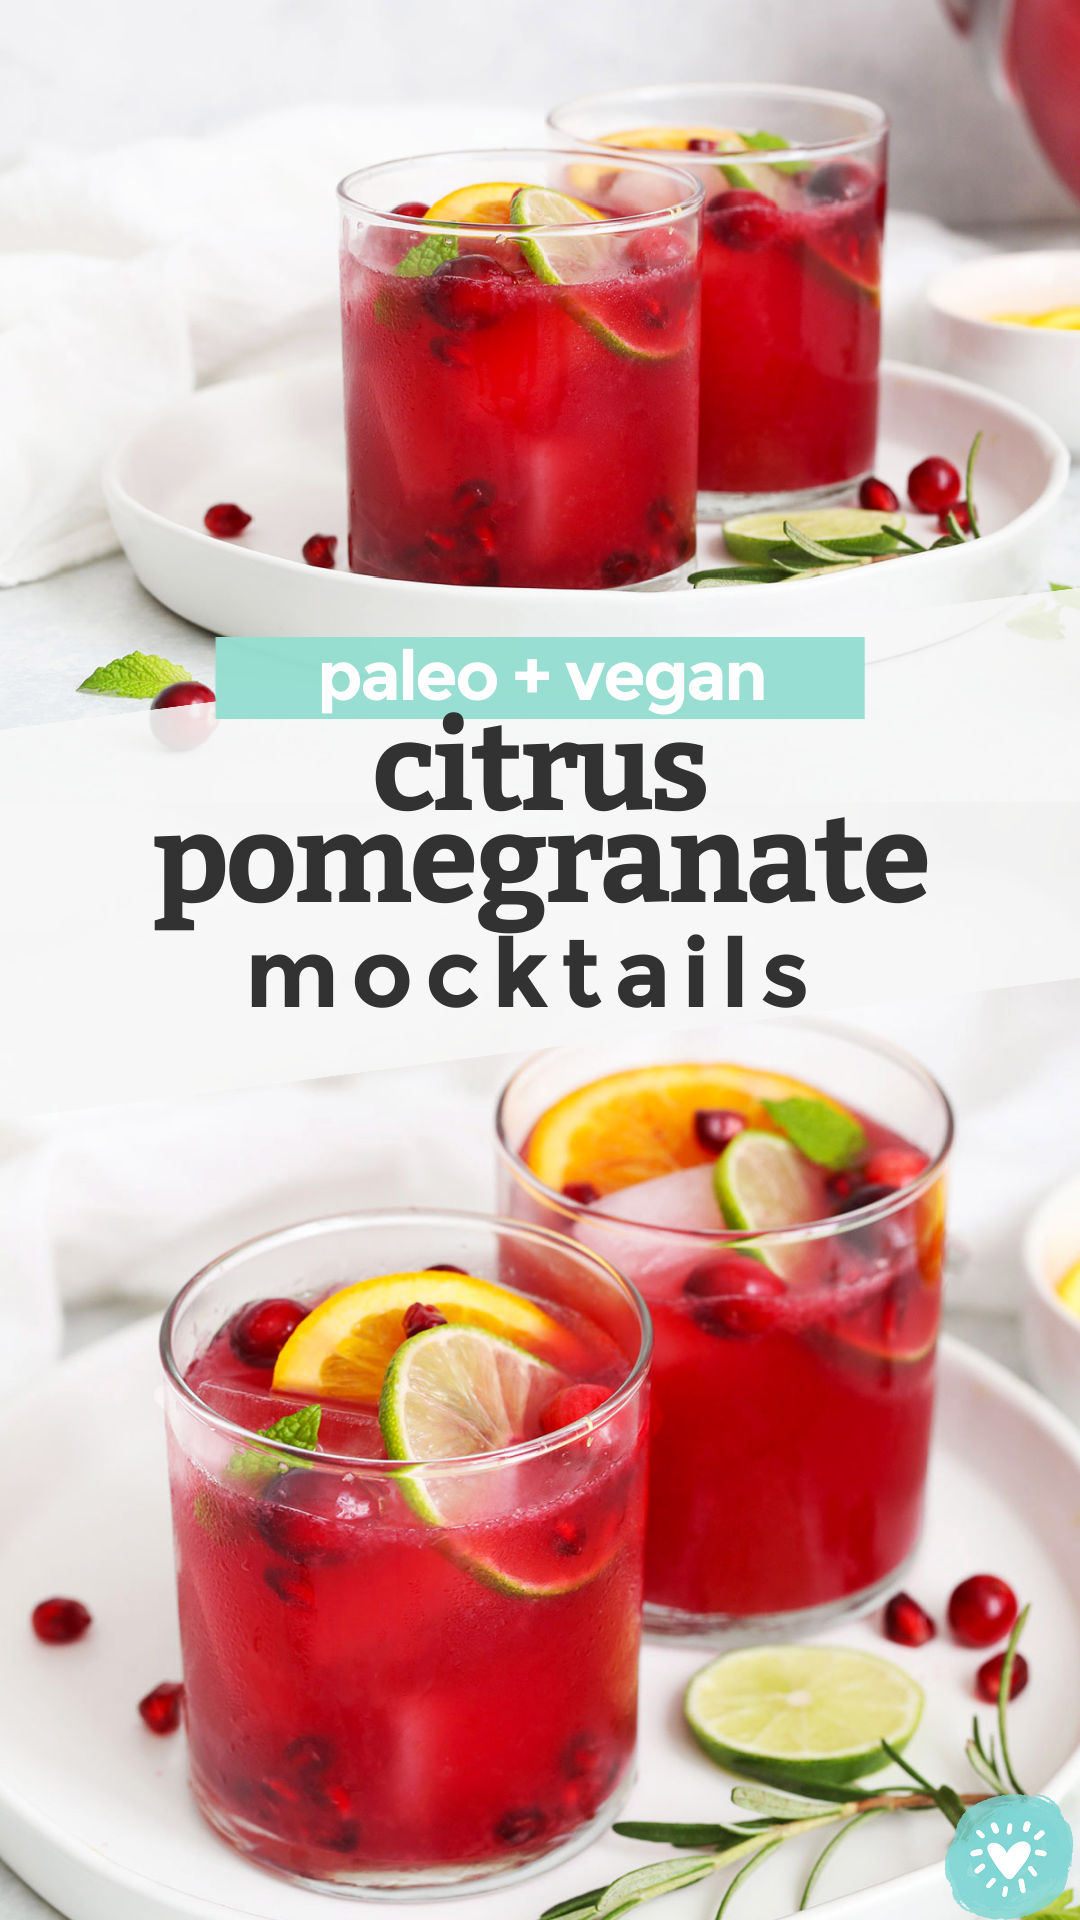 Sparkling Citrus Pomegranate Mocktail - This bright, crisp pomegranatedrink has a delicious sweet-tart flavor and just enough bubbles to keep things fun. You'll love it all holiday season! (Paleo & Vegan) // holiday mocktail recipe // paleo mocktail // vegan mocktail #paleo #vegan #mocktail #nonalcoholic #drink #christmas #newyears #thanksgiving